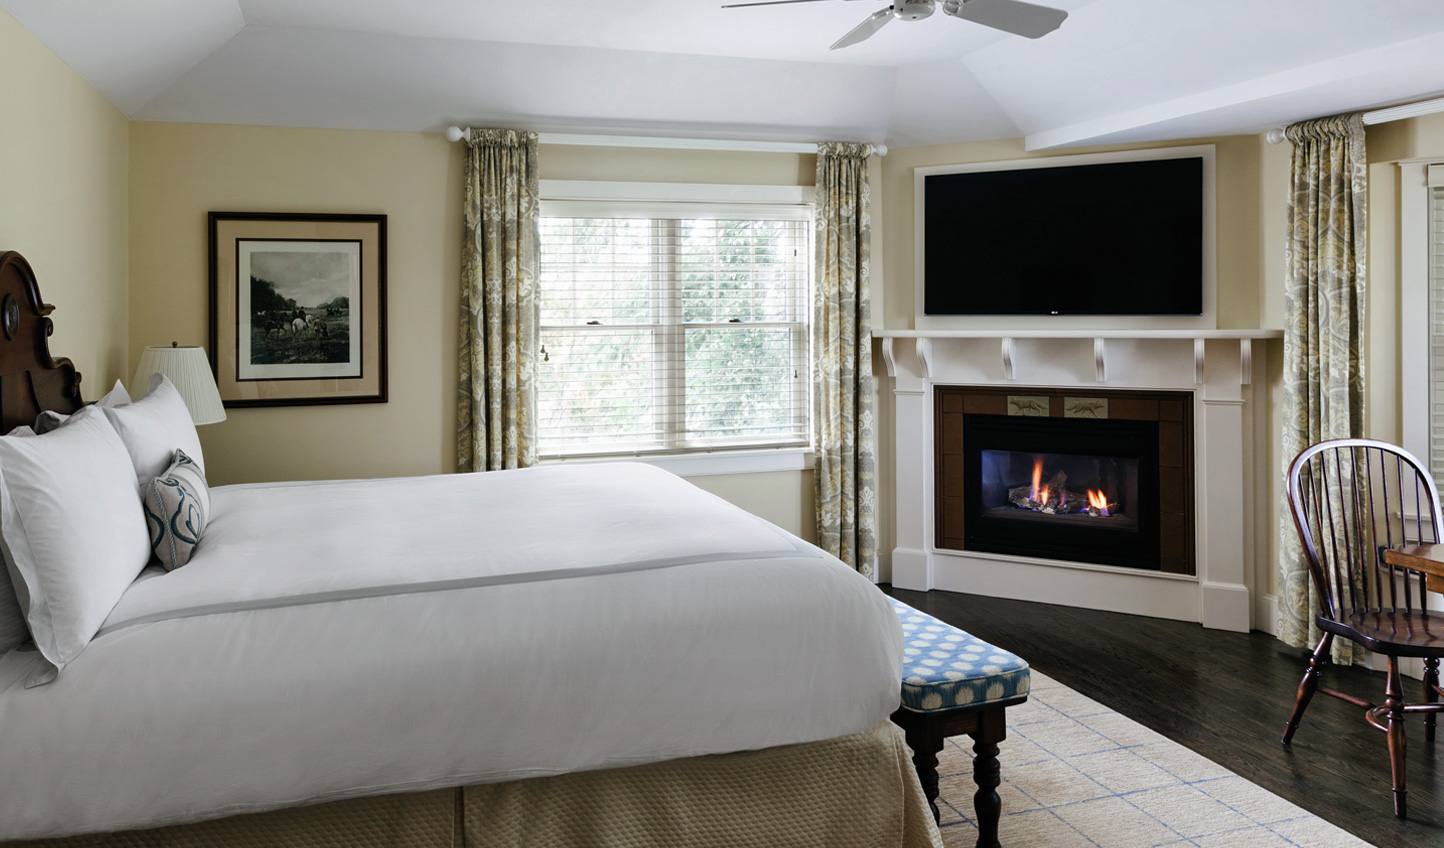 Cosy Cape Cod evenings are promised with in-room gas-lit fireplaces